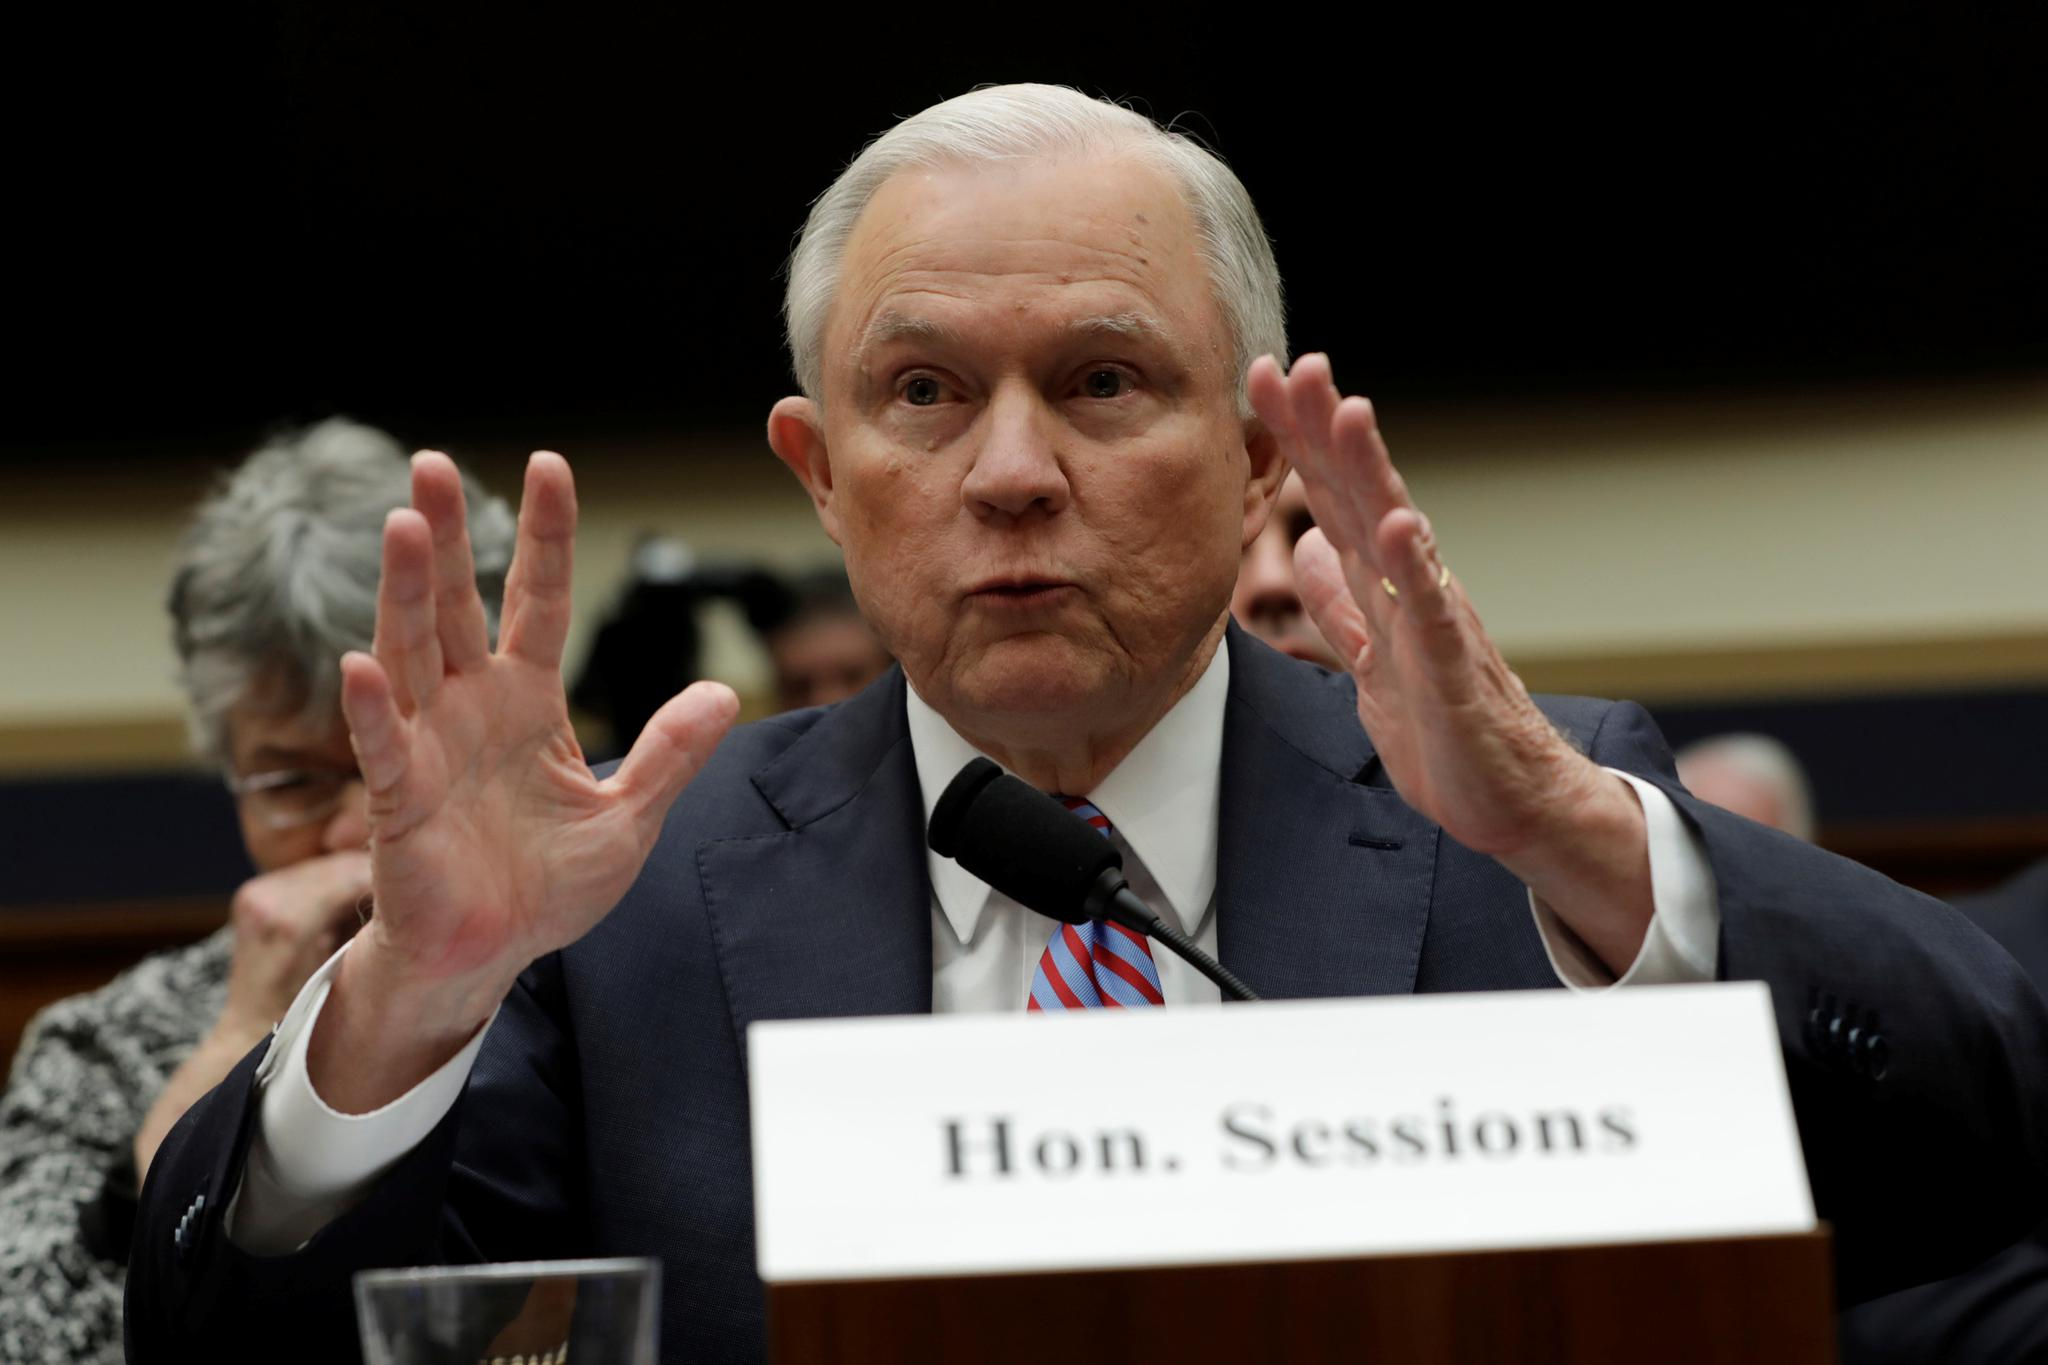 U.S. Attorney General Jeff Sessions testifies before a House Judiciary Committee hearing on oversight of the Justice Department on Capitol Hill in Washington, U.S., November 14, 2017.